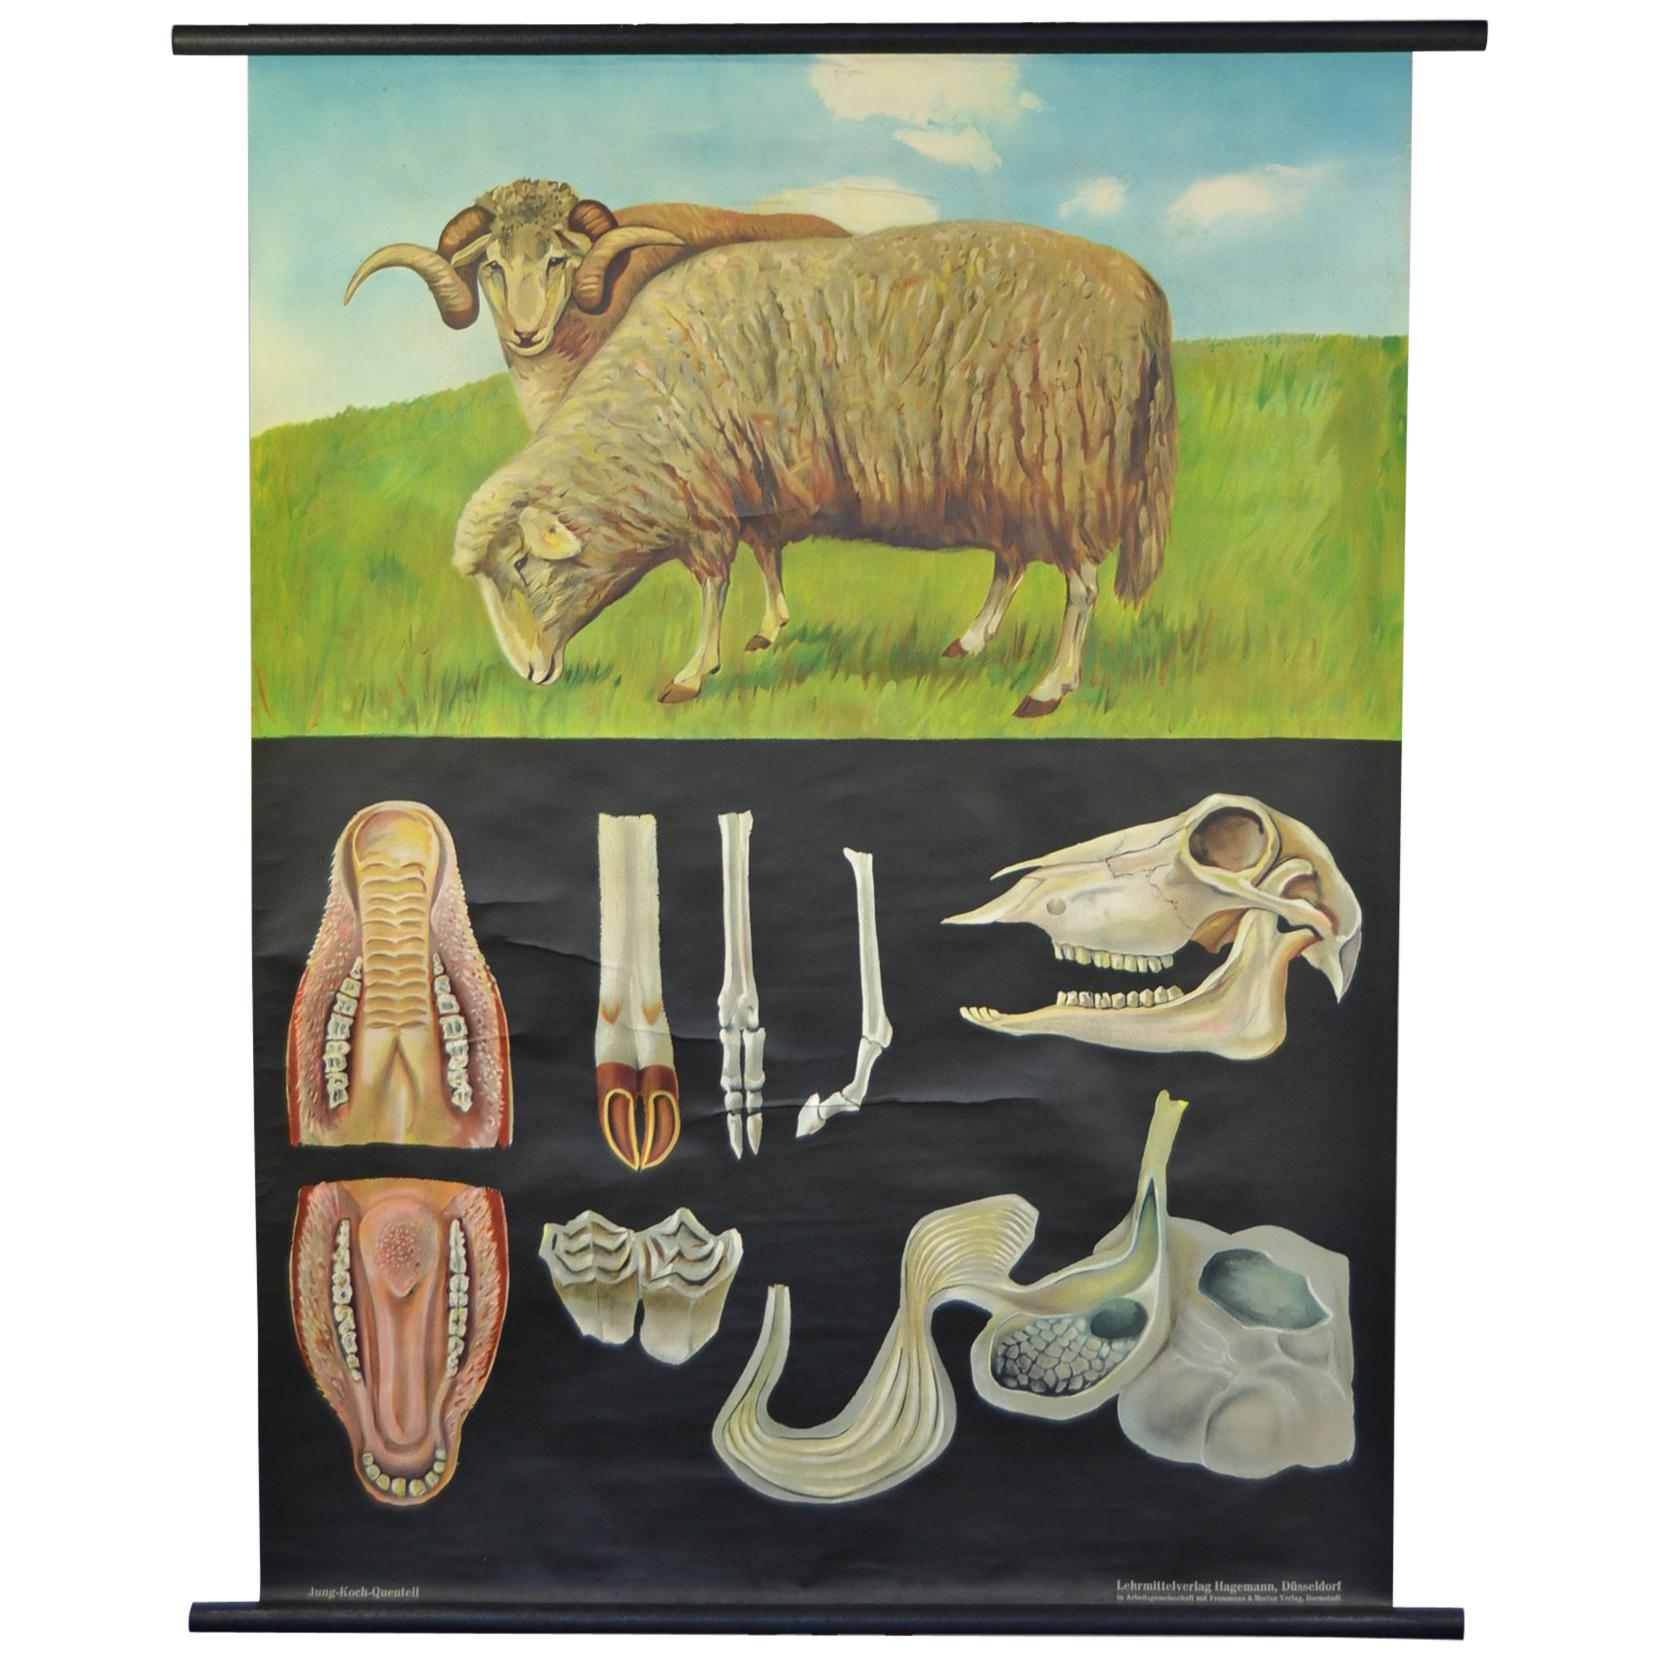 1960s Canvas Wall School Chart with Sheep by Jung-Koch-Quentell